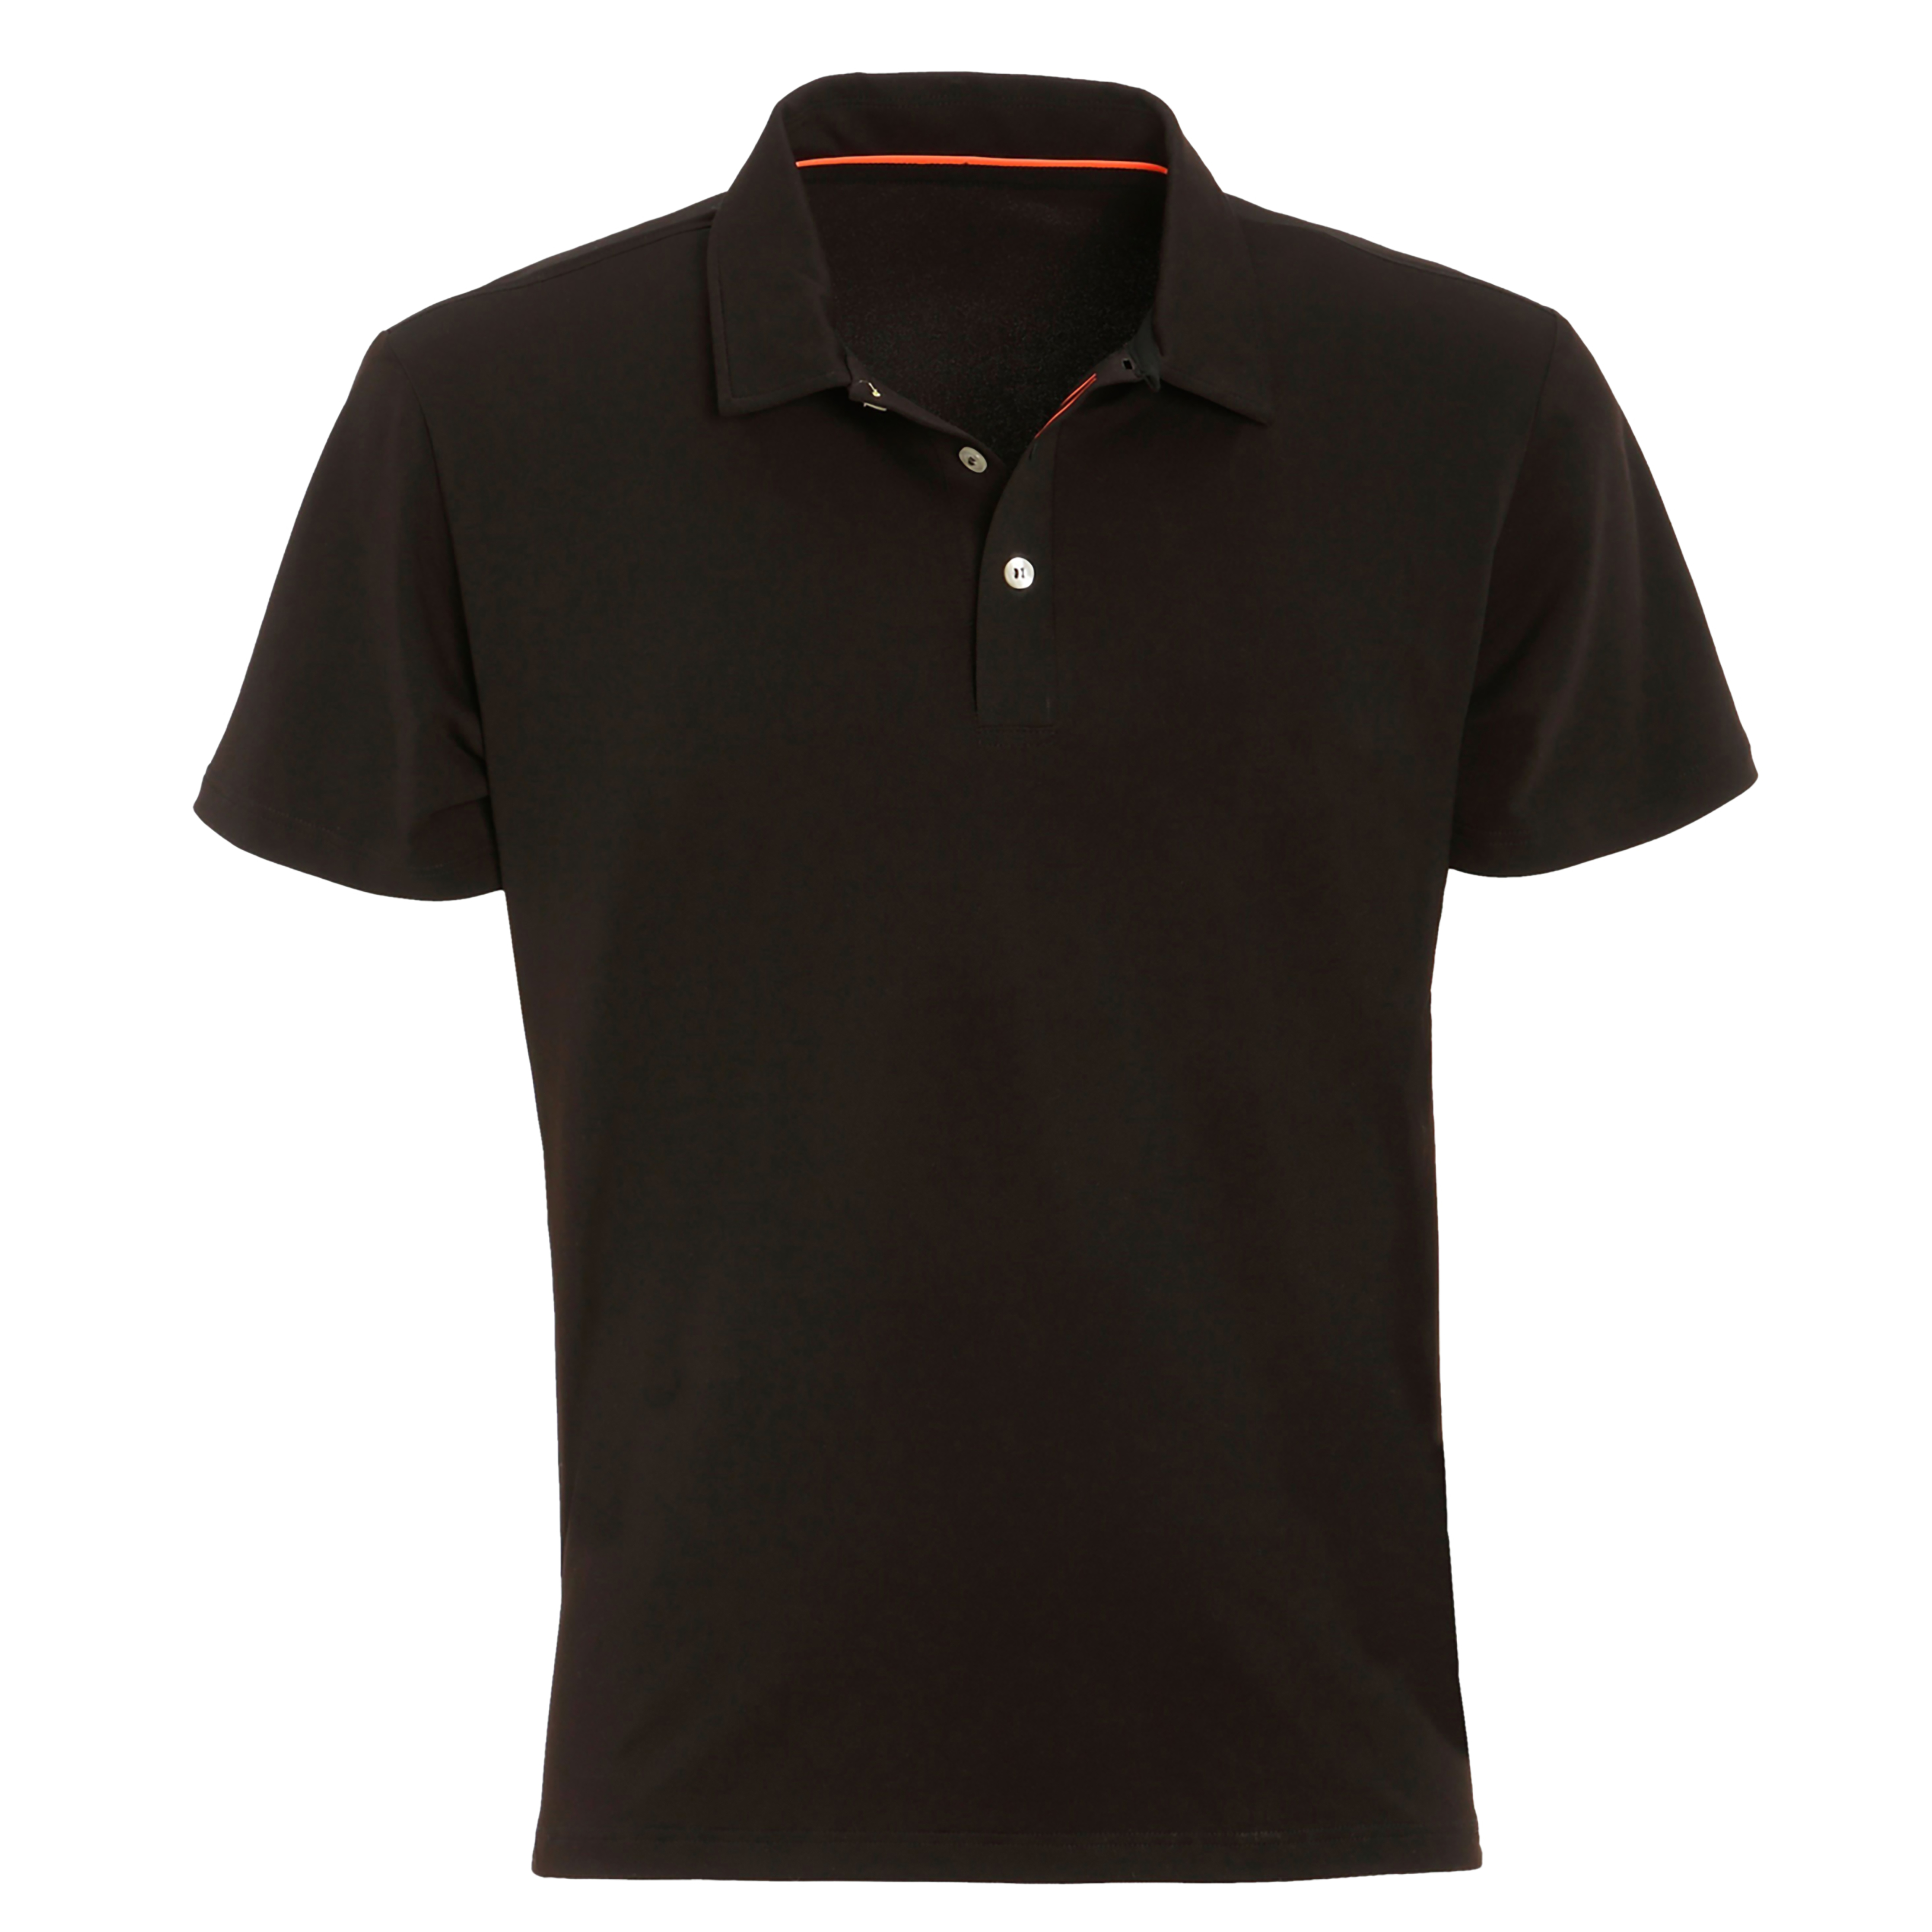 Toio bay techno polo shirt